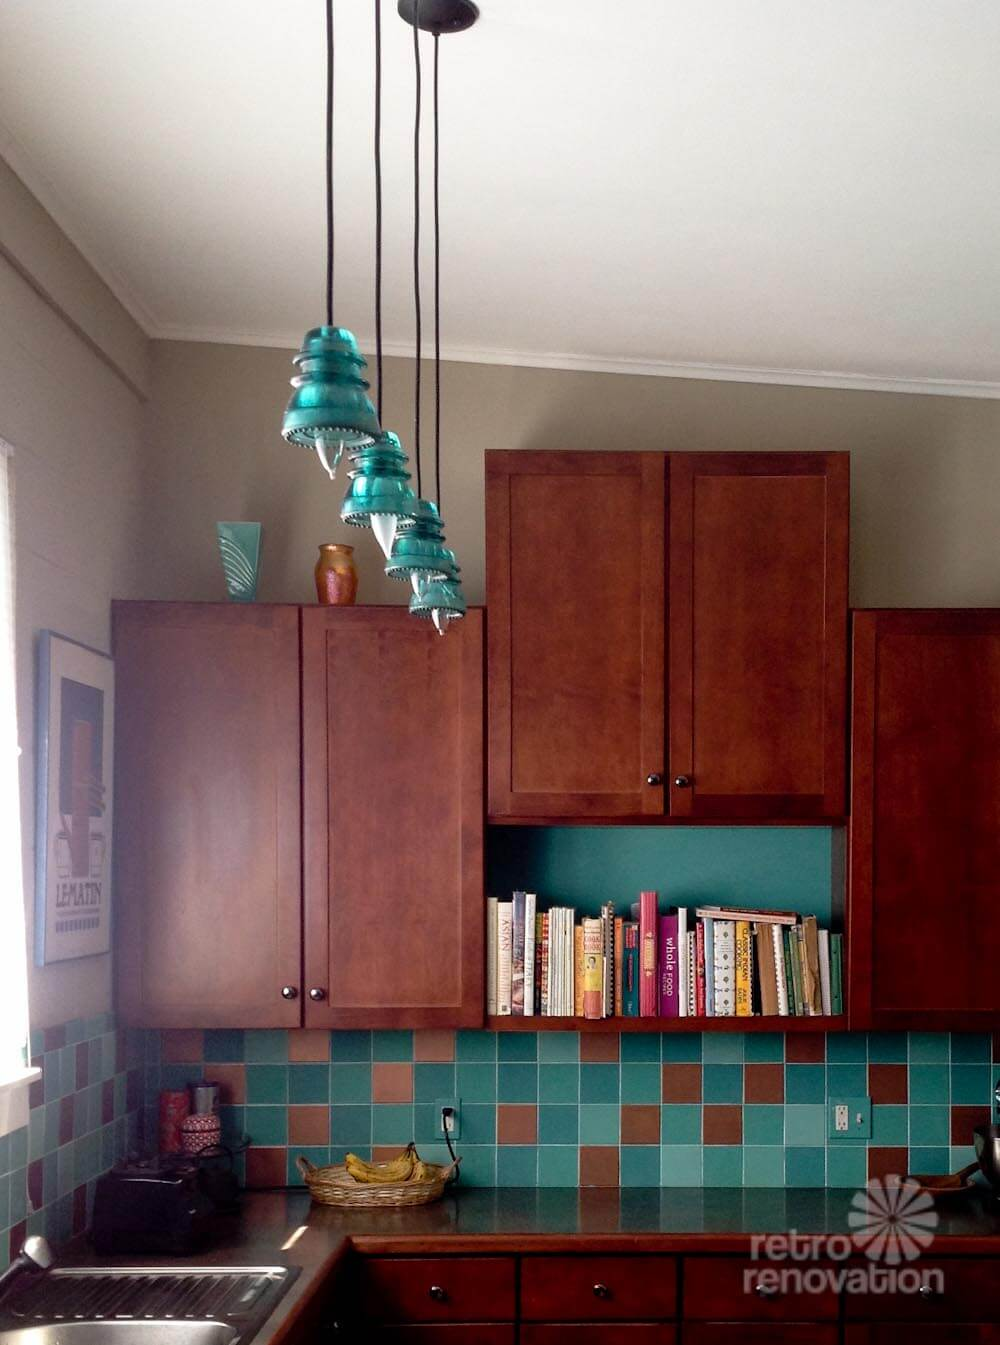 Lori S Diy Insulator Pendant Lights Retro Renovation